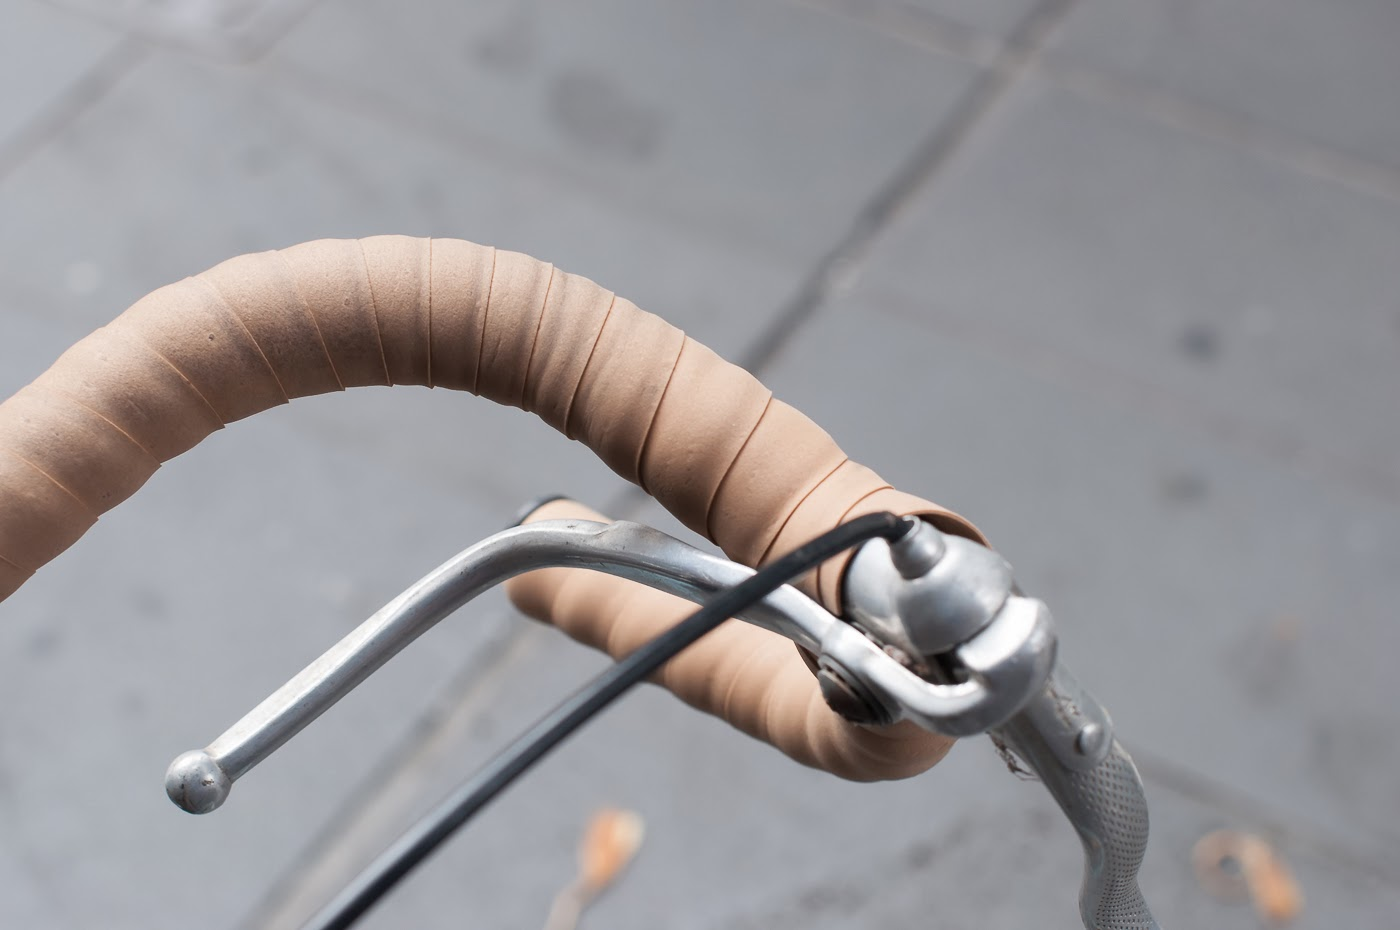 single speed, bike, bicycle, tim macauley, the biketorialist, melbourne, conversion, road bike,  bourke st, custom, brake lever, vintage, bar tape